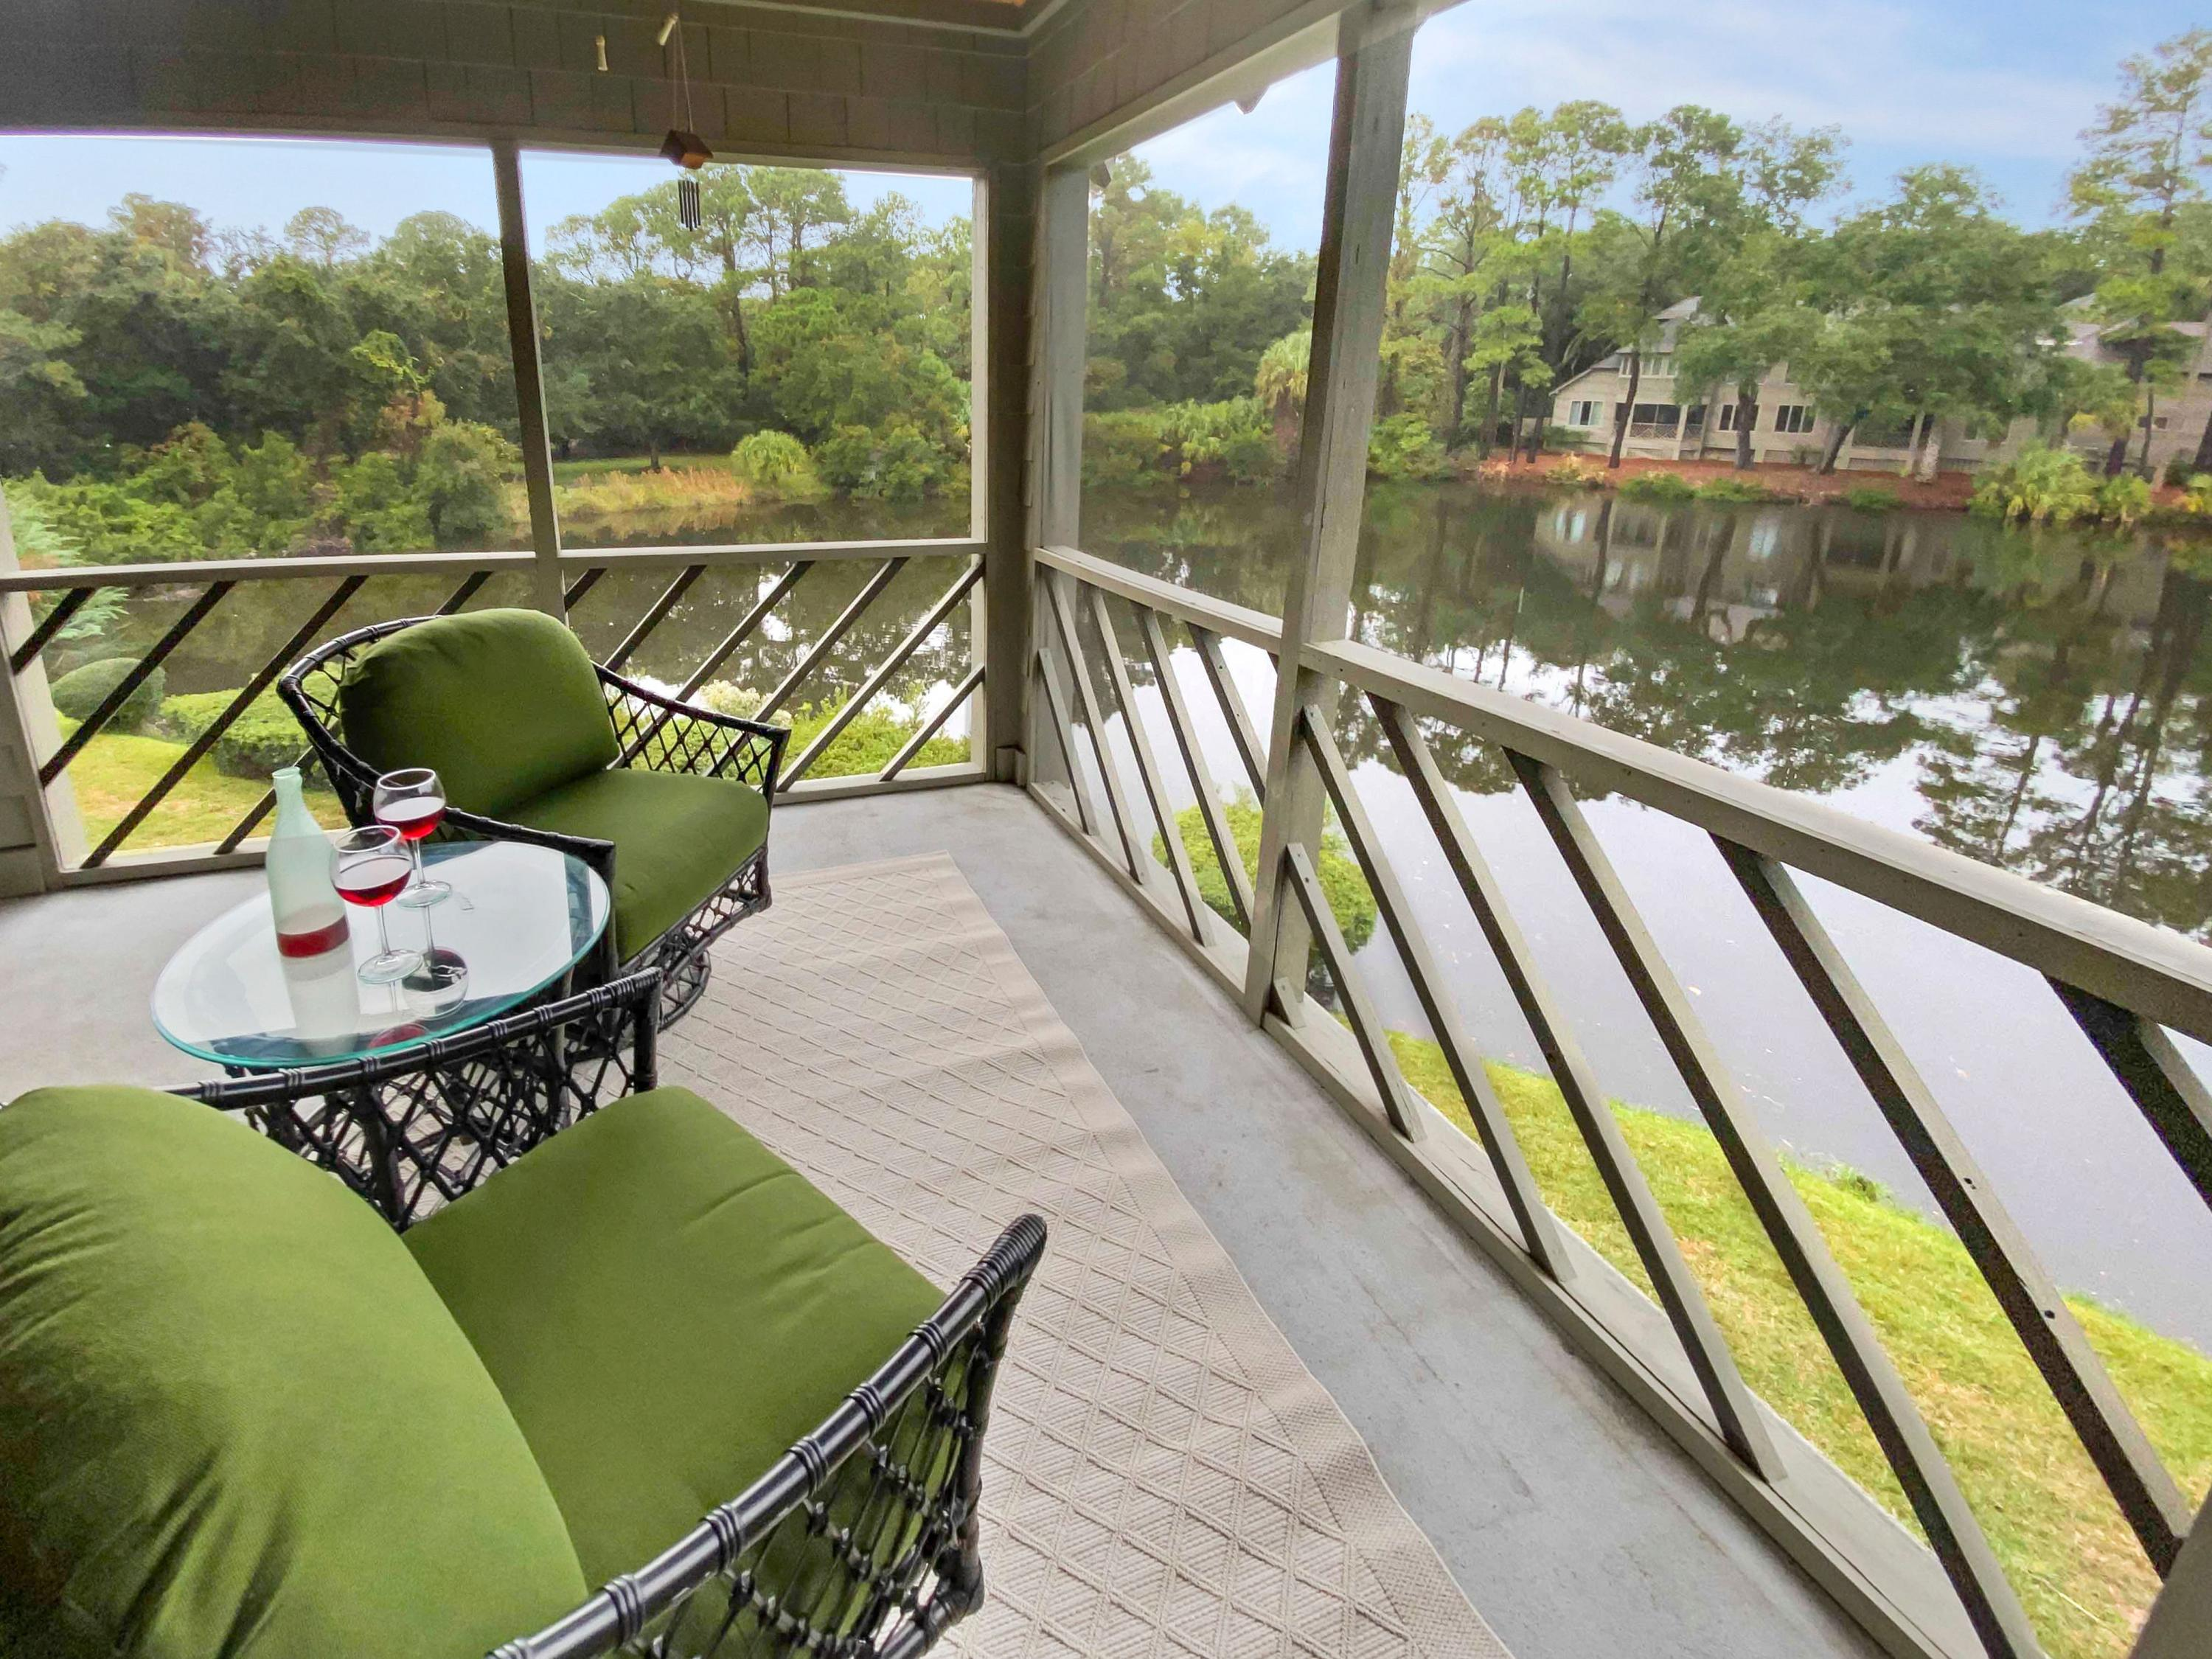 Kiawah Island Condos For Sale - 4676 Tennis Club Villas, Kiawah Island, SC - 17